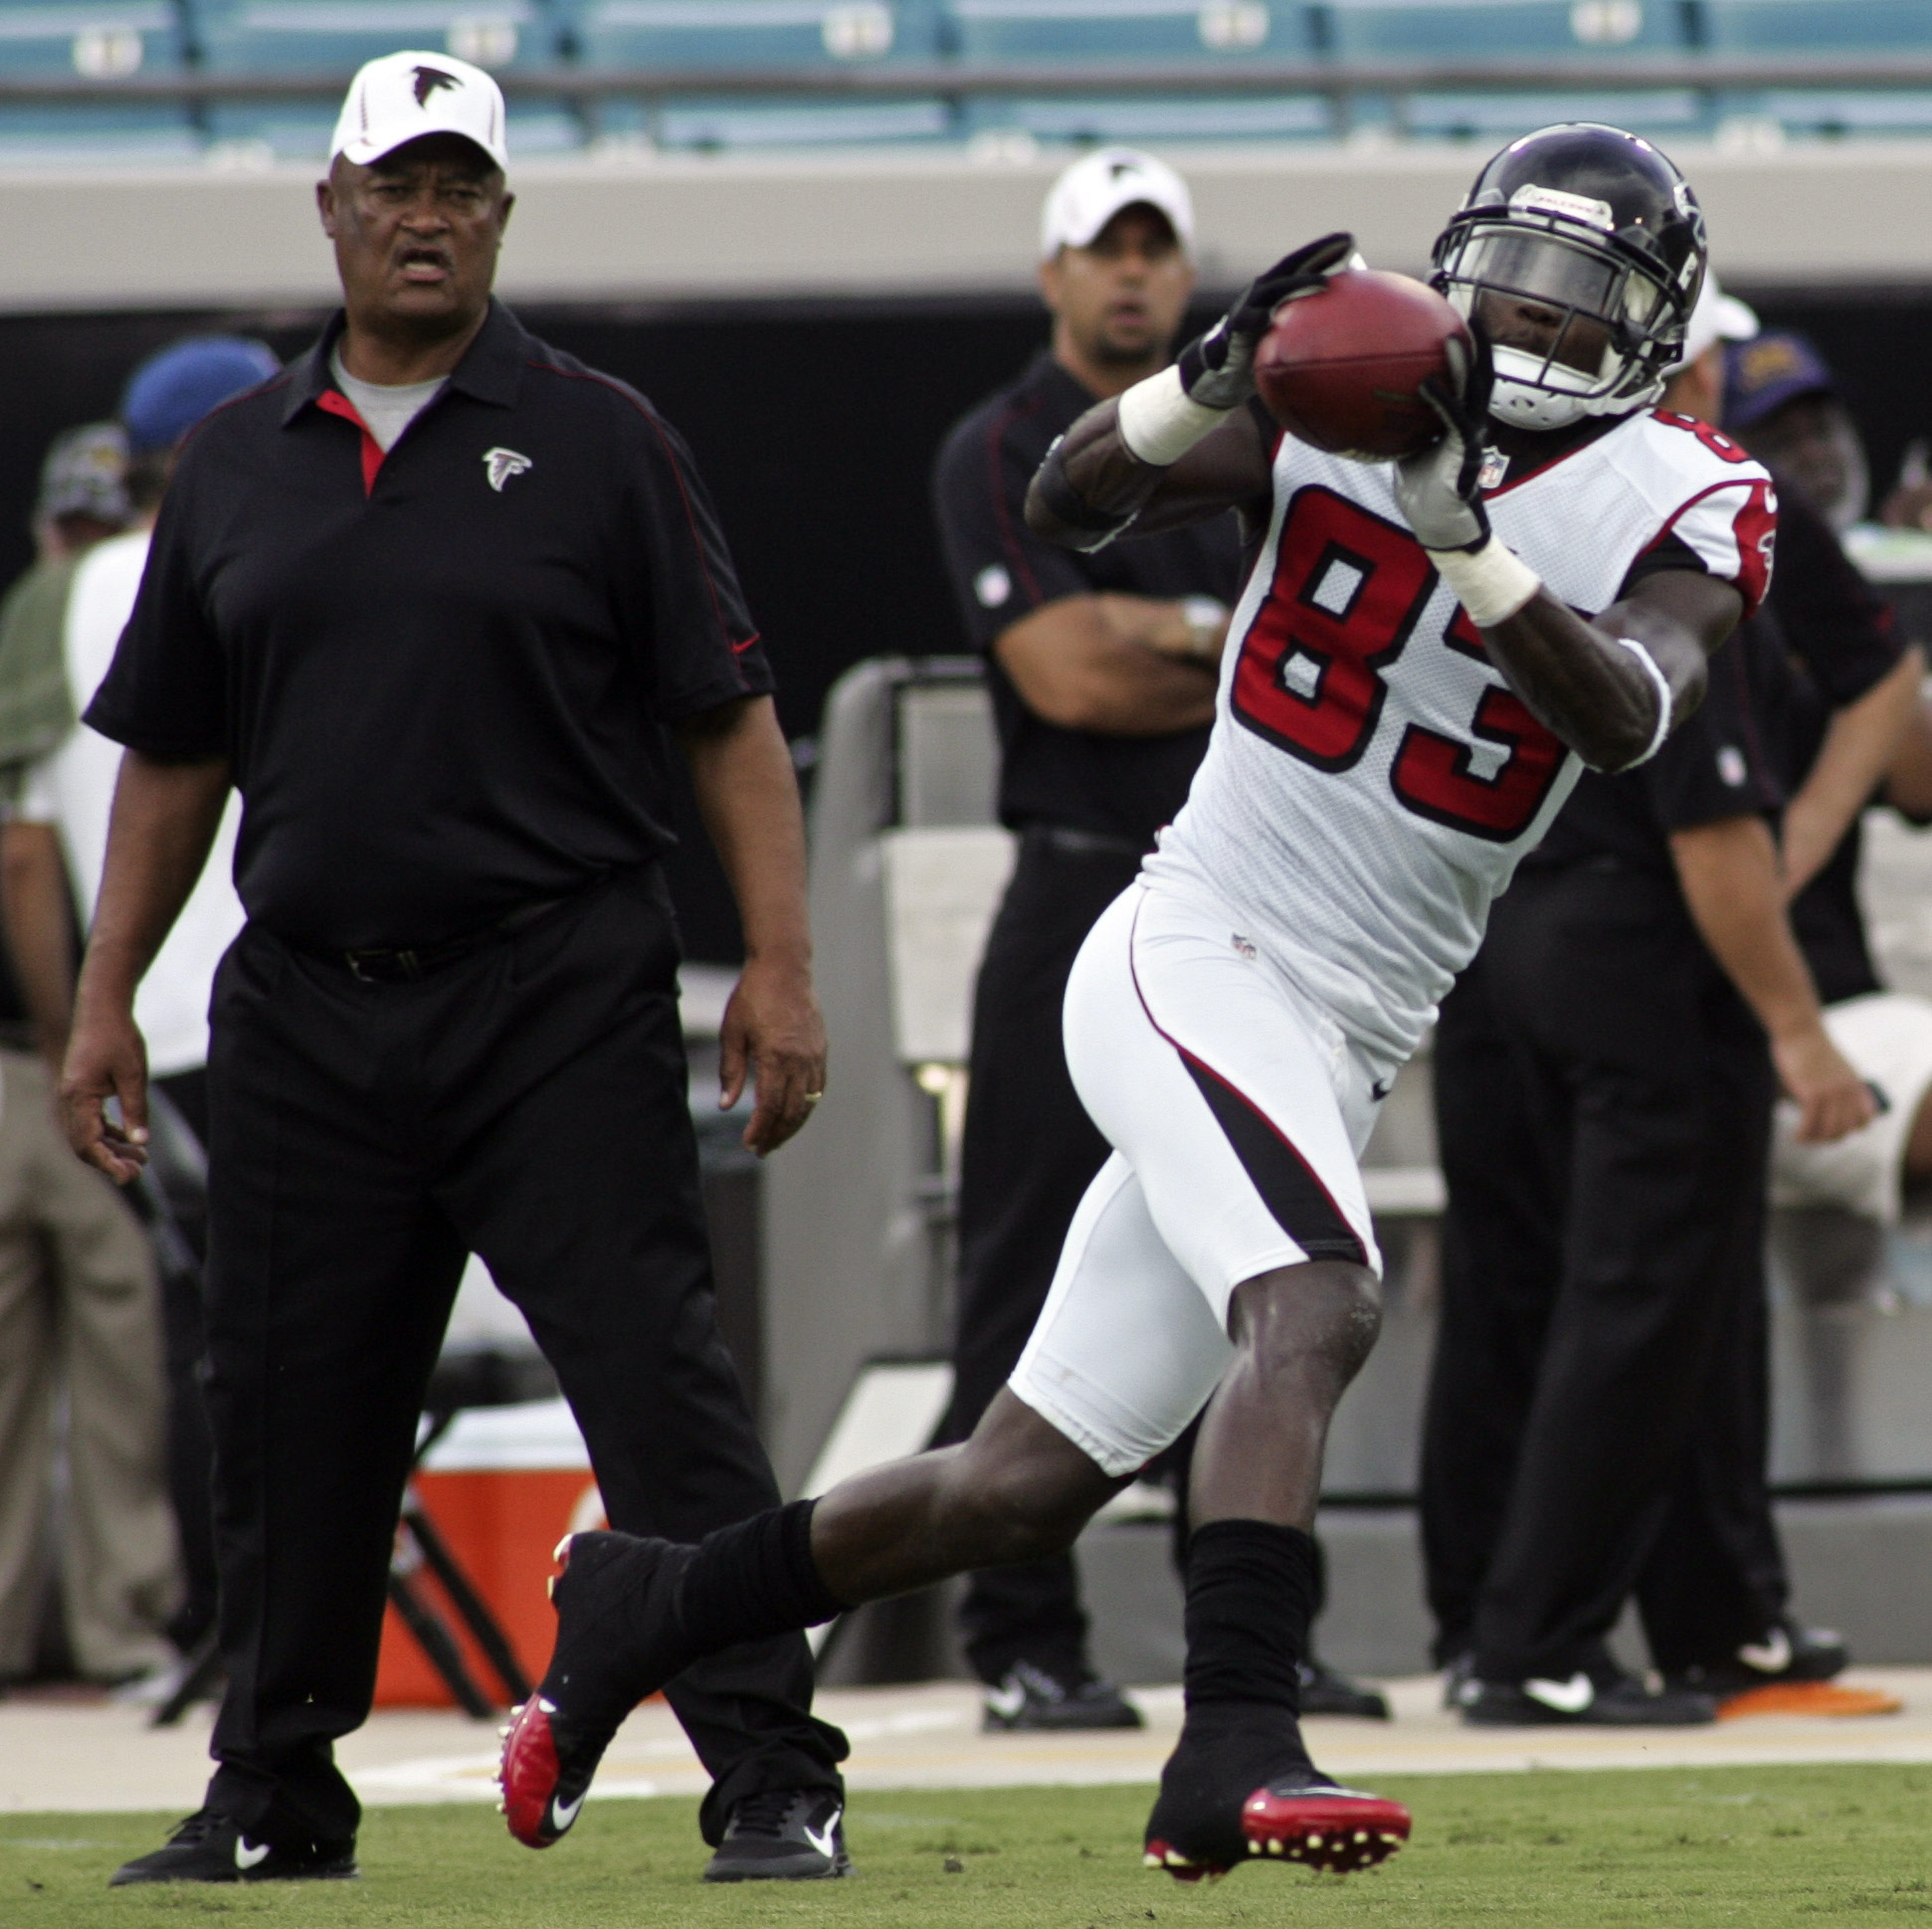 August 30, 2012; Jacksonville FL, USA; Atlanta Falcons wide receiver Harry Douglas (83) catches a pass before the start of their game against the Jacksonville Jaguars at EverBank Field. Mandatory Credit: Phil Sears-US PRESSWIRE